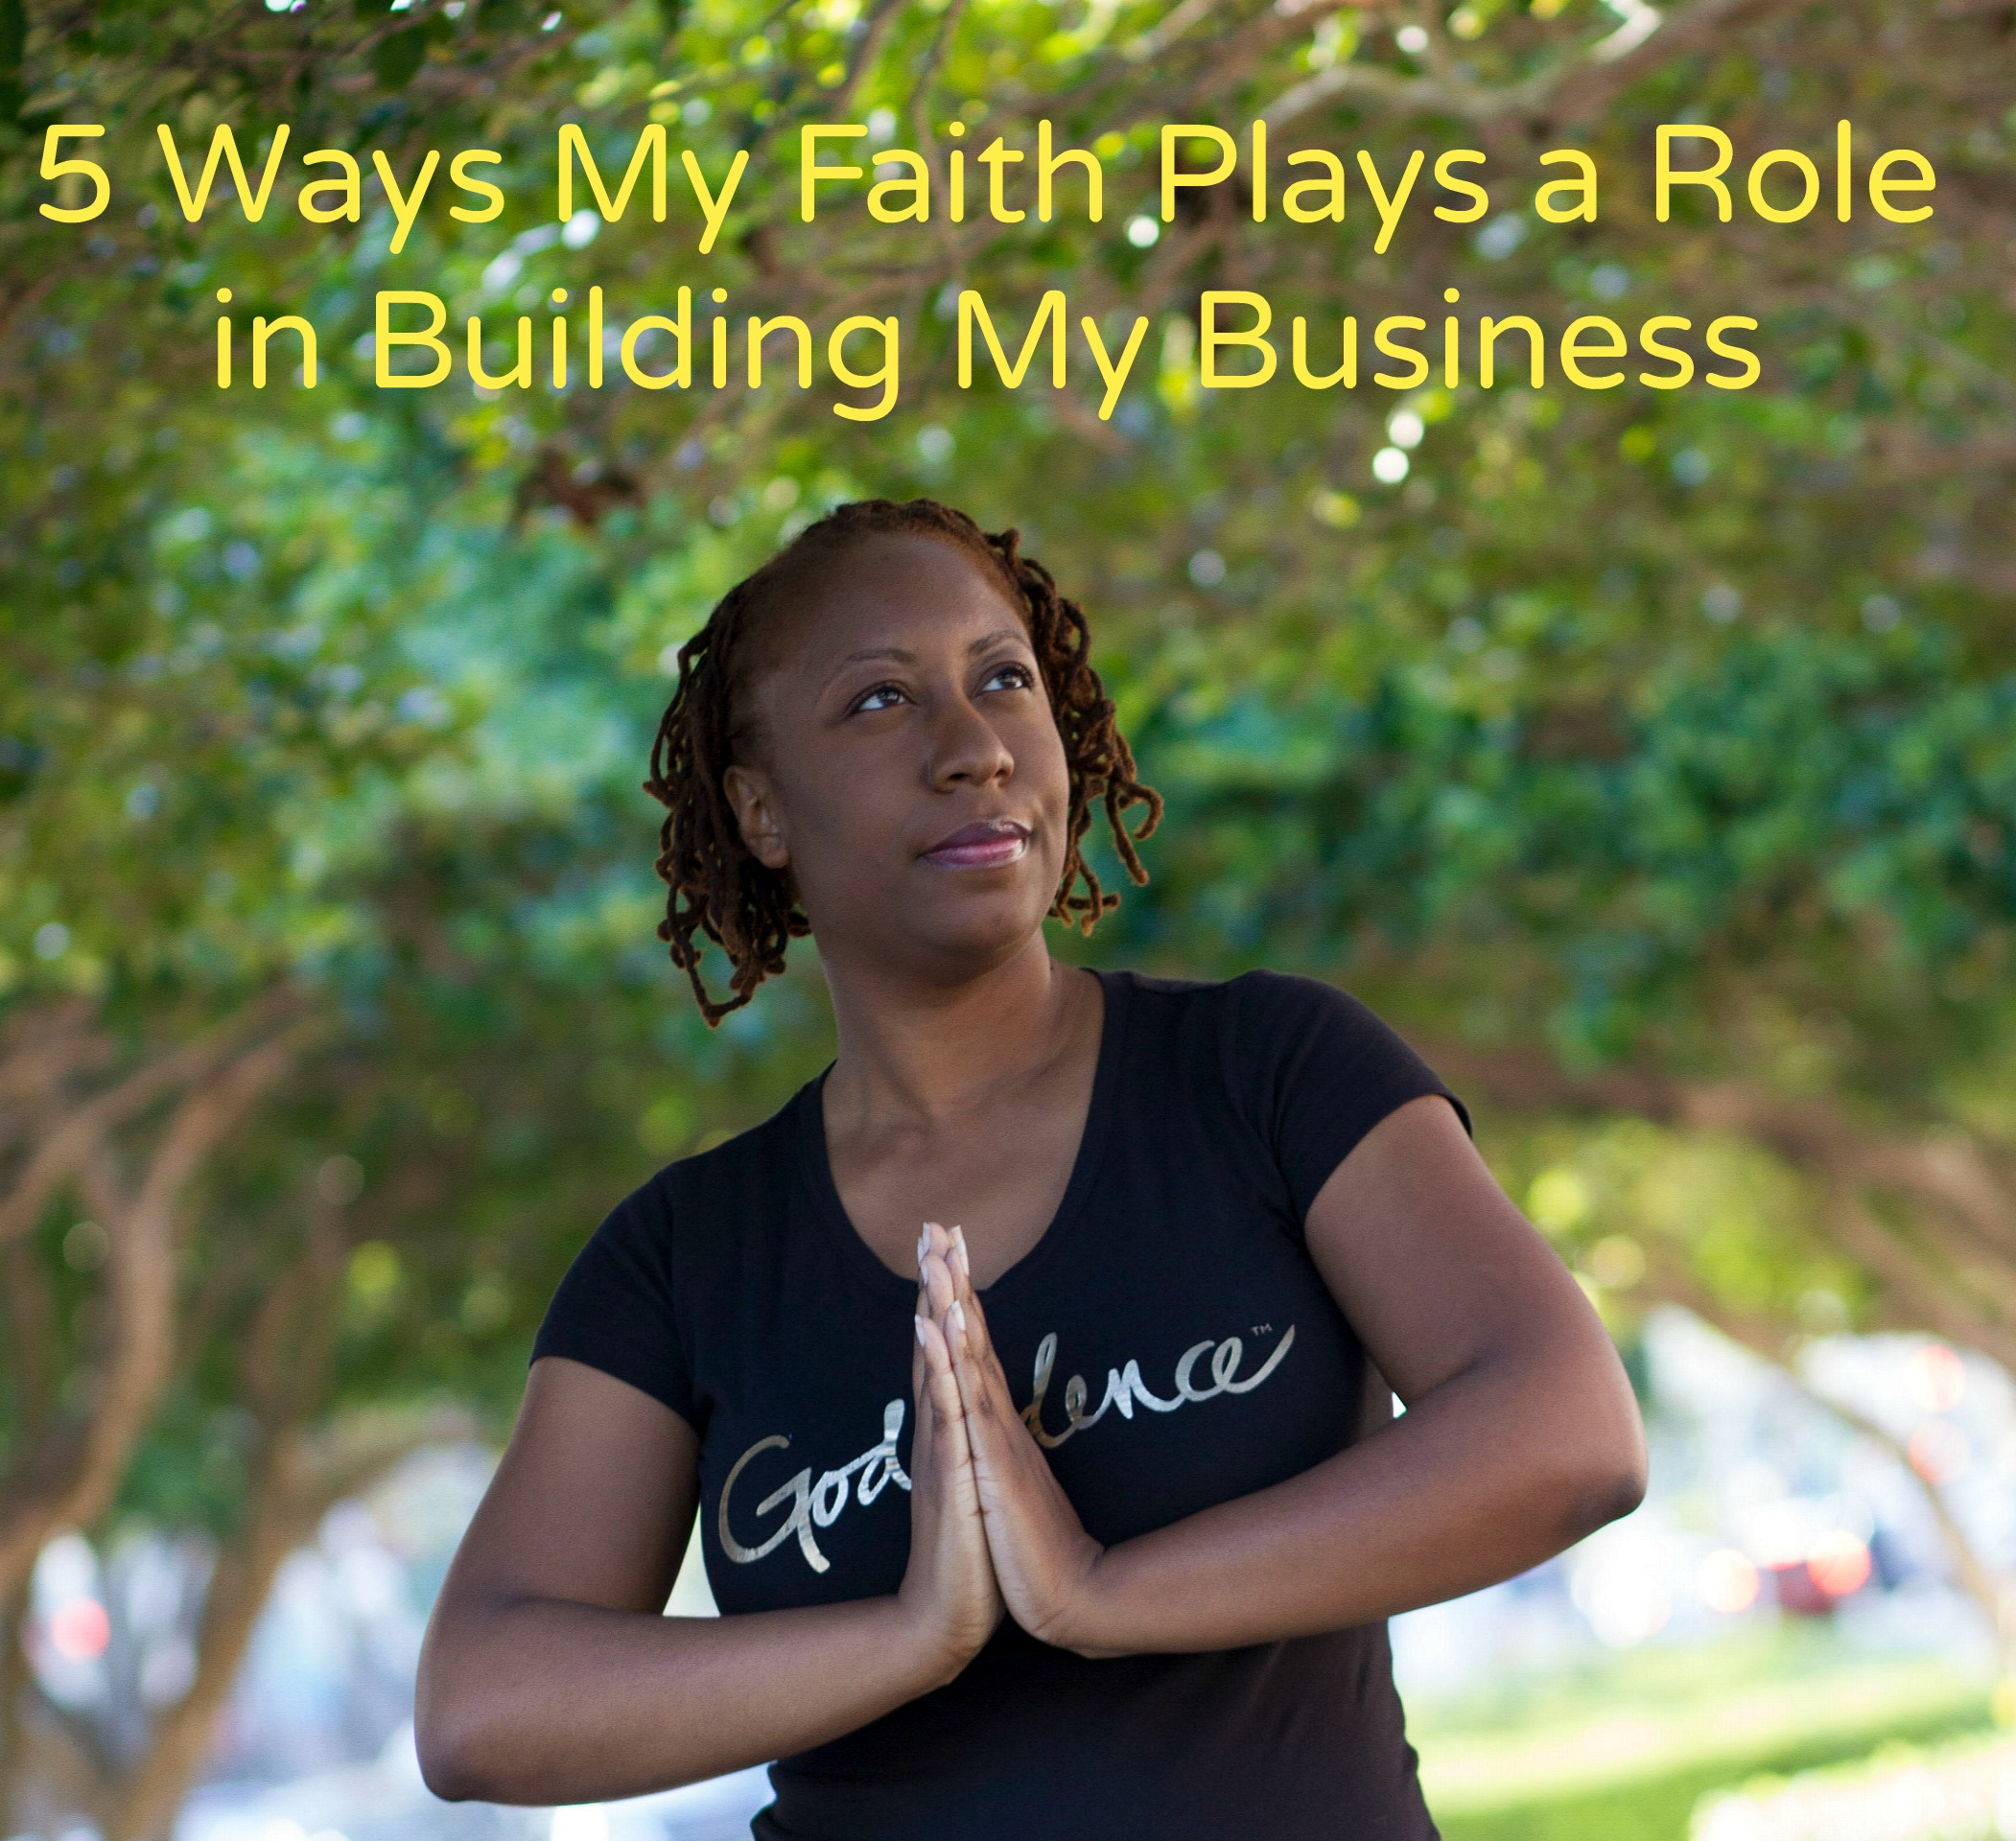 5 Ways My Faith Plays a Role in Building My Business